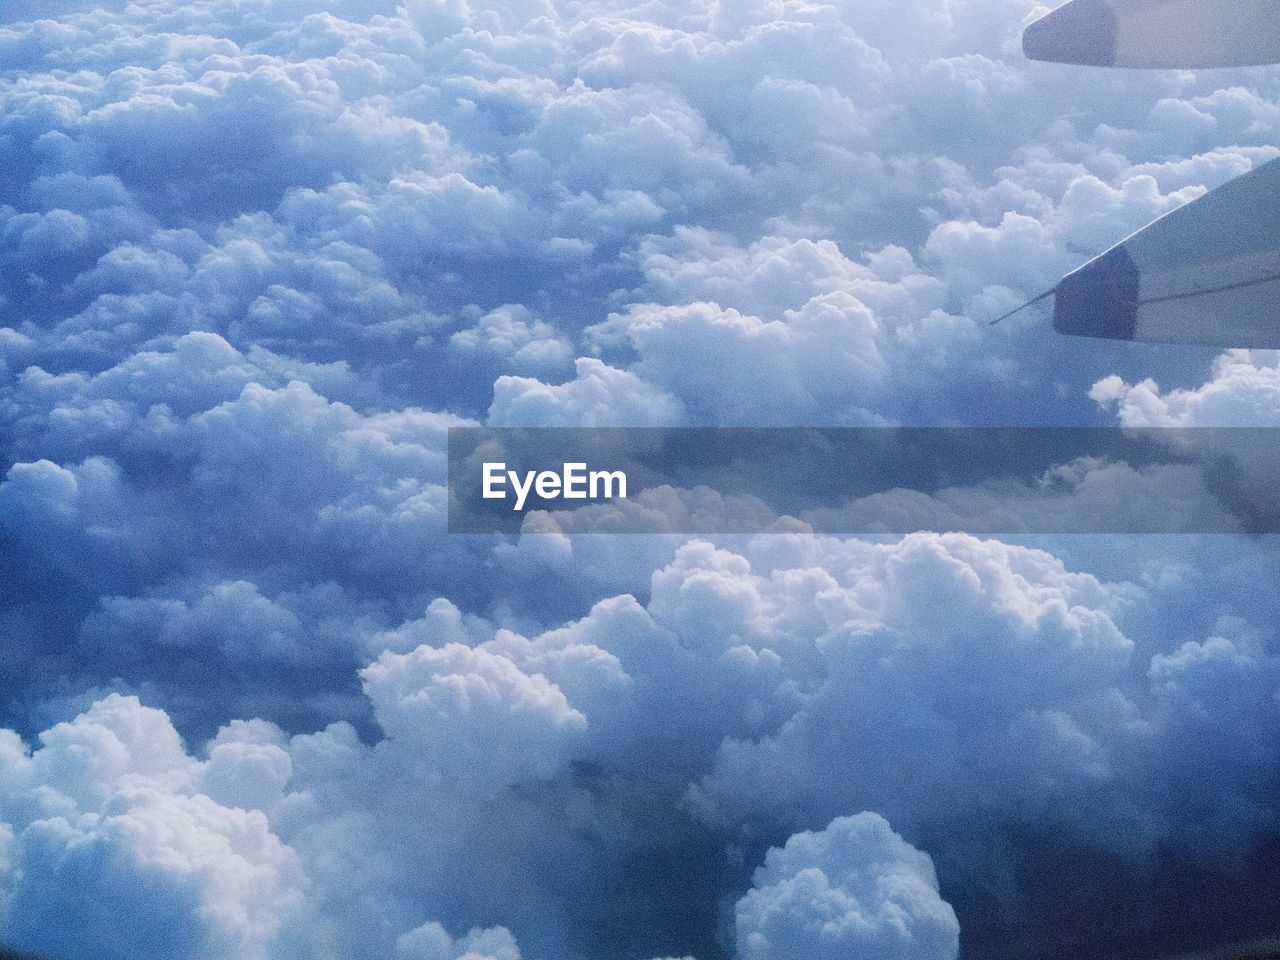 cloud - sky, nature, cloudscape, sky, beauty in nature, majestic, scenics, aerial view, outdoors, no people, day, journey, backgrounds, blue, airplane, transportation, travel, tranquility, airplane wing